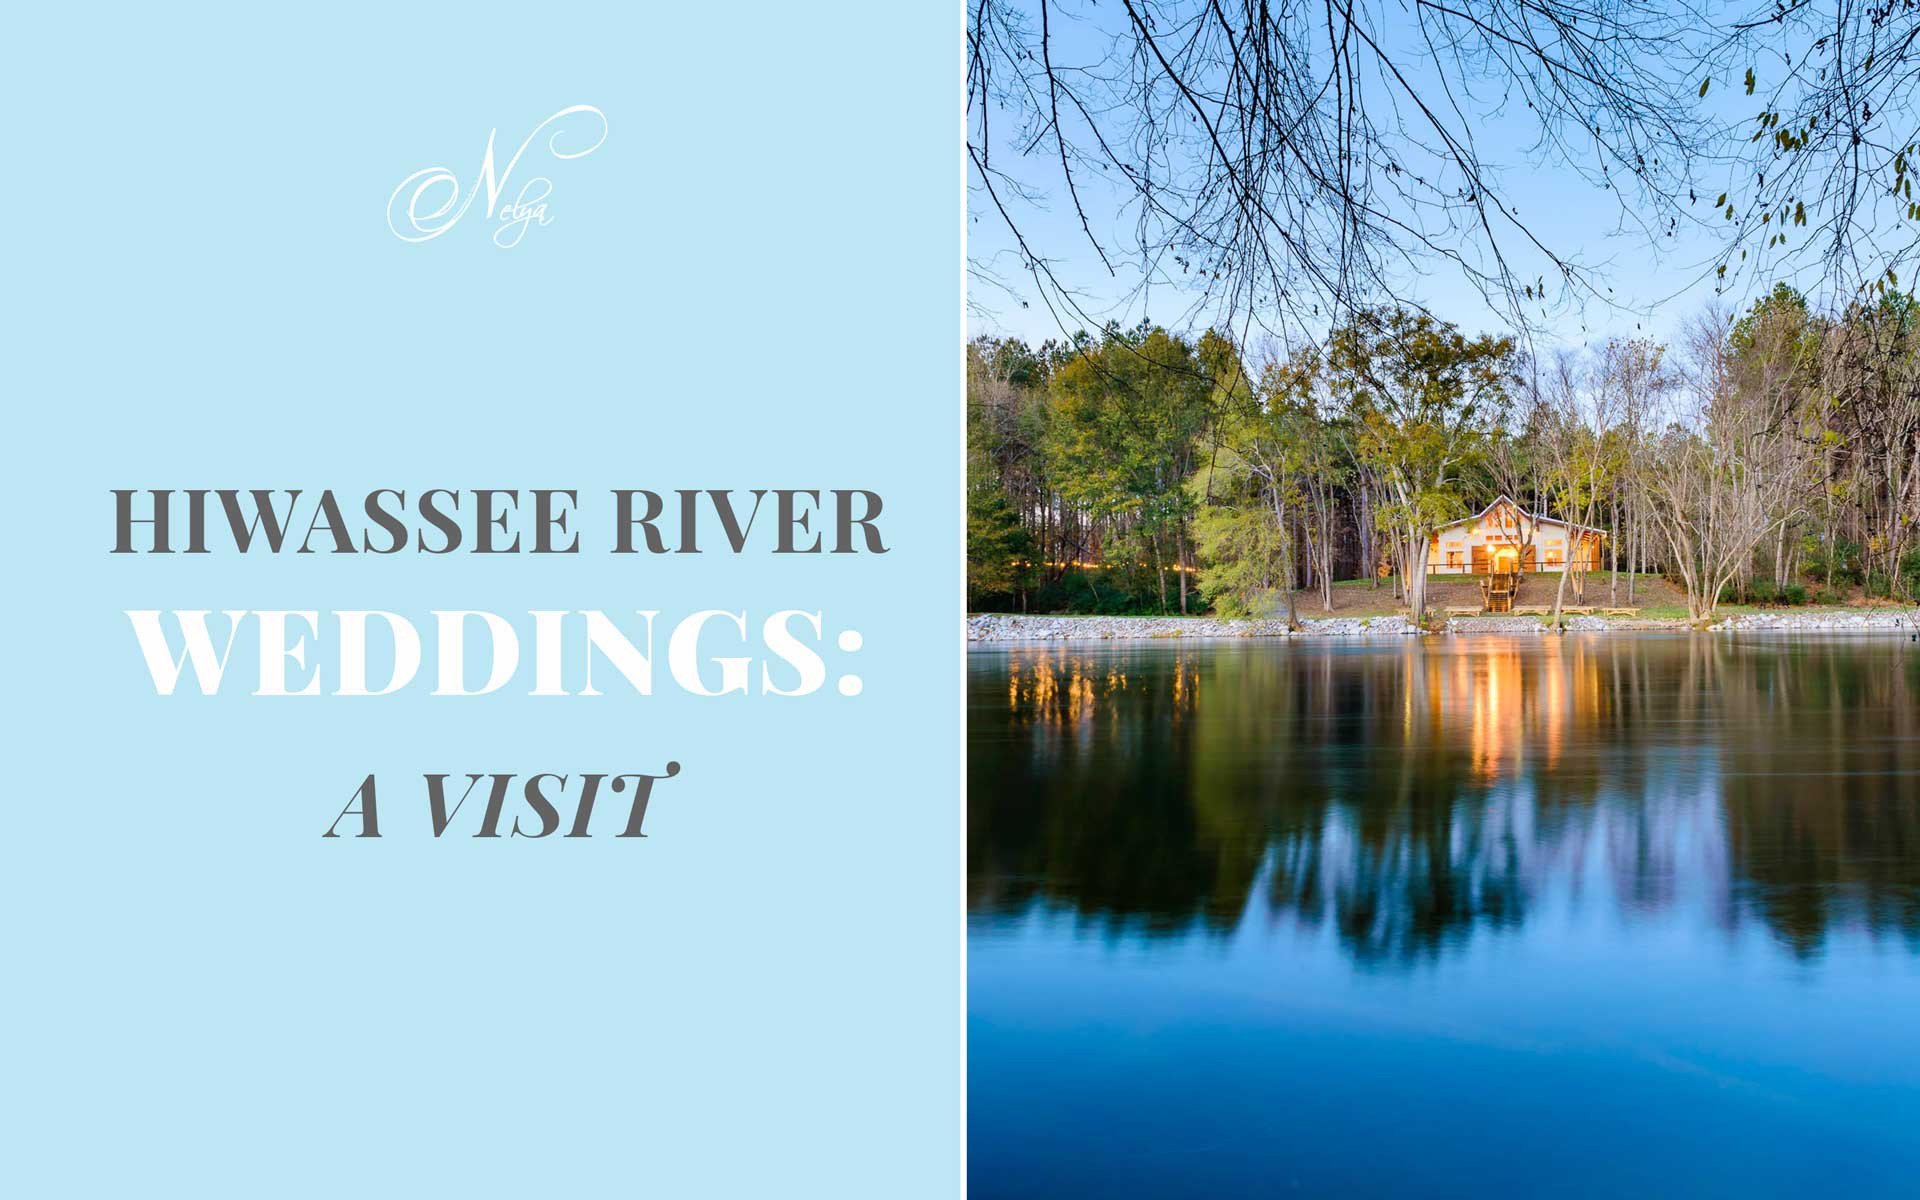 Hiwassee River Weddings and Events Delano TN | A visit